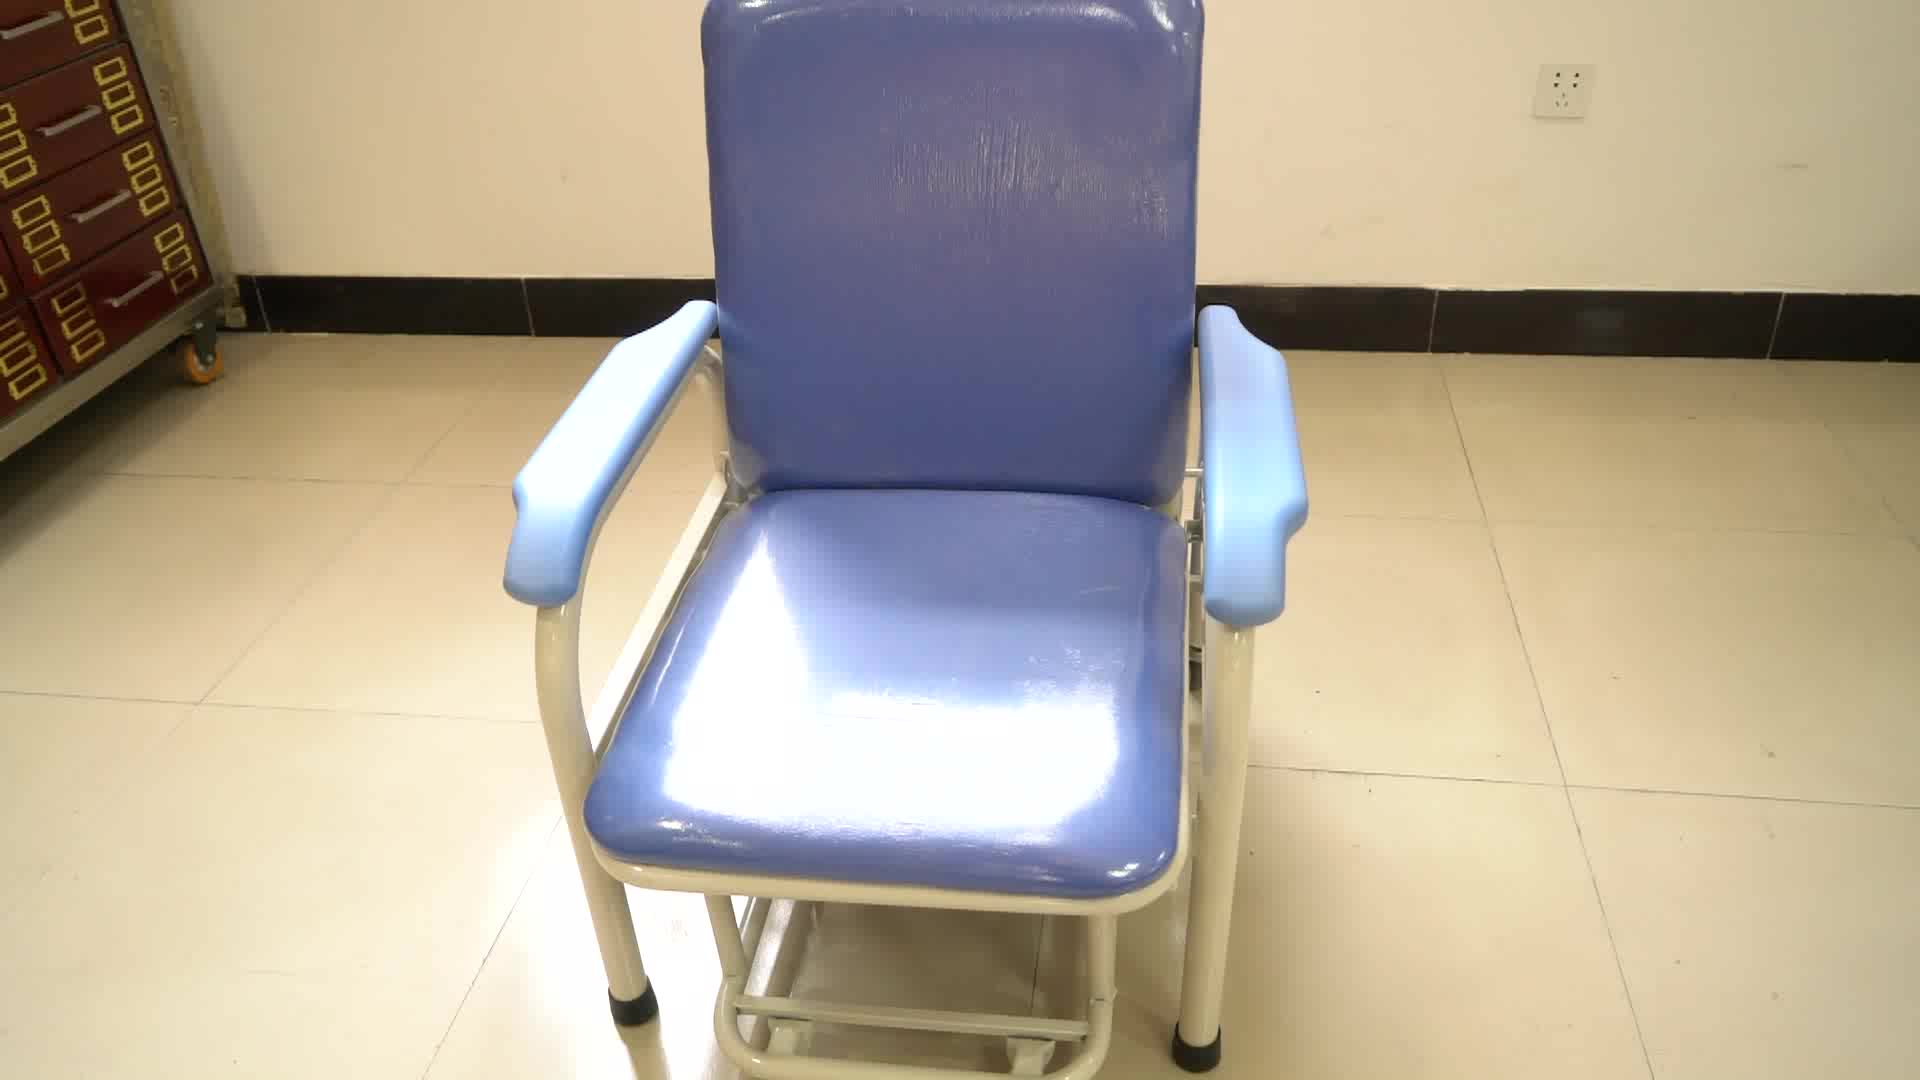 Hospital Medical Furniture Ward Used Fixed Transfusion Chair for Patient